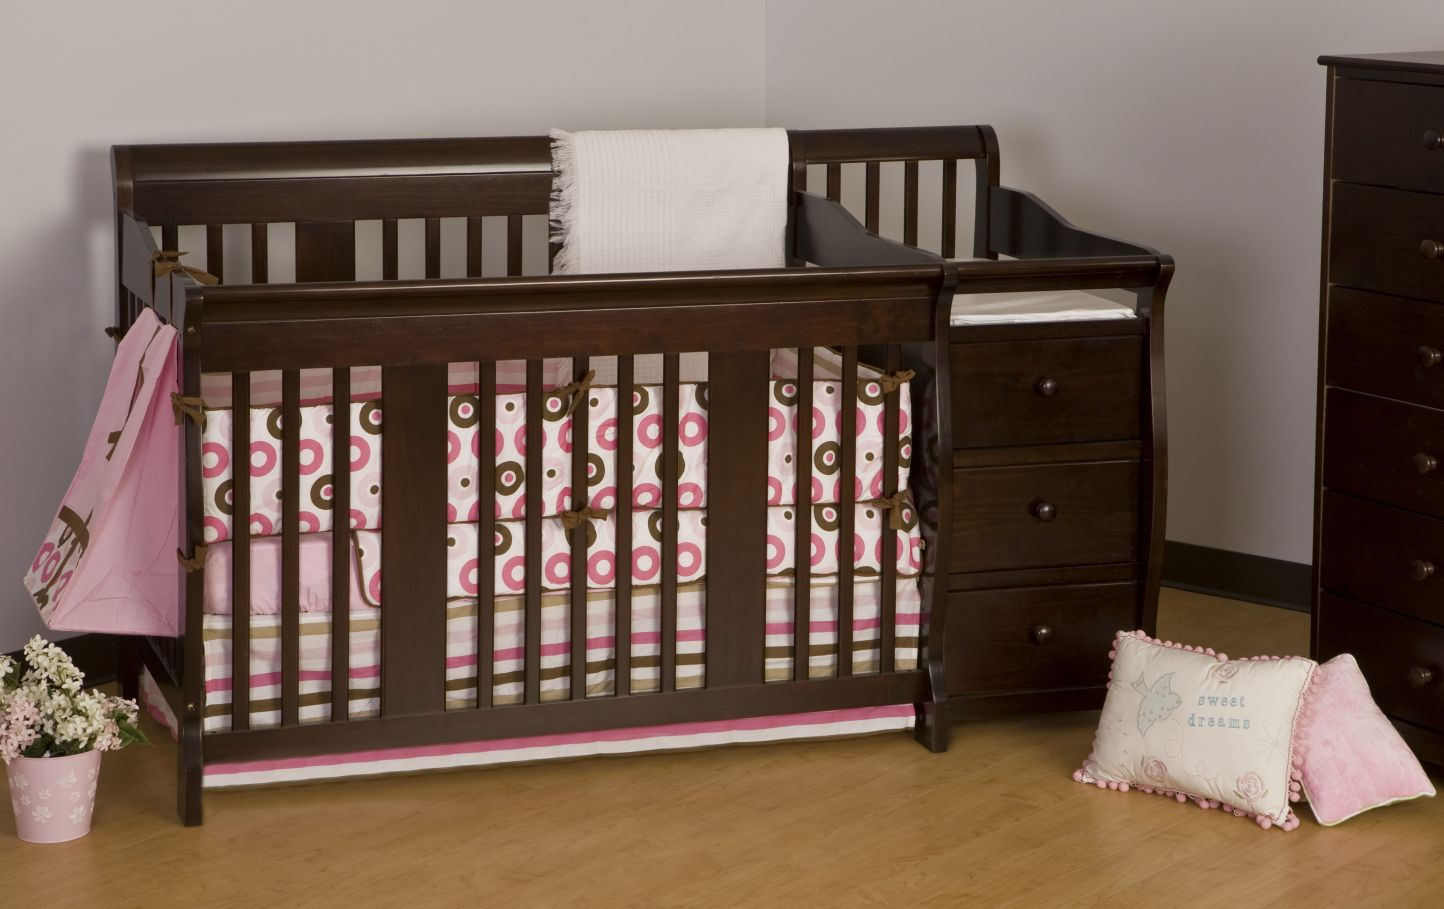 Baby Furniture At Burlington Coat Factory Best Interior House Paint Check More